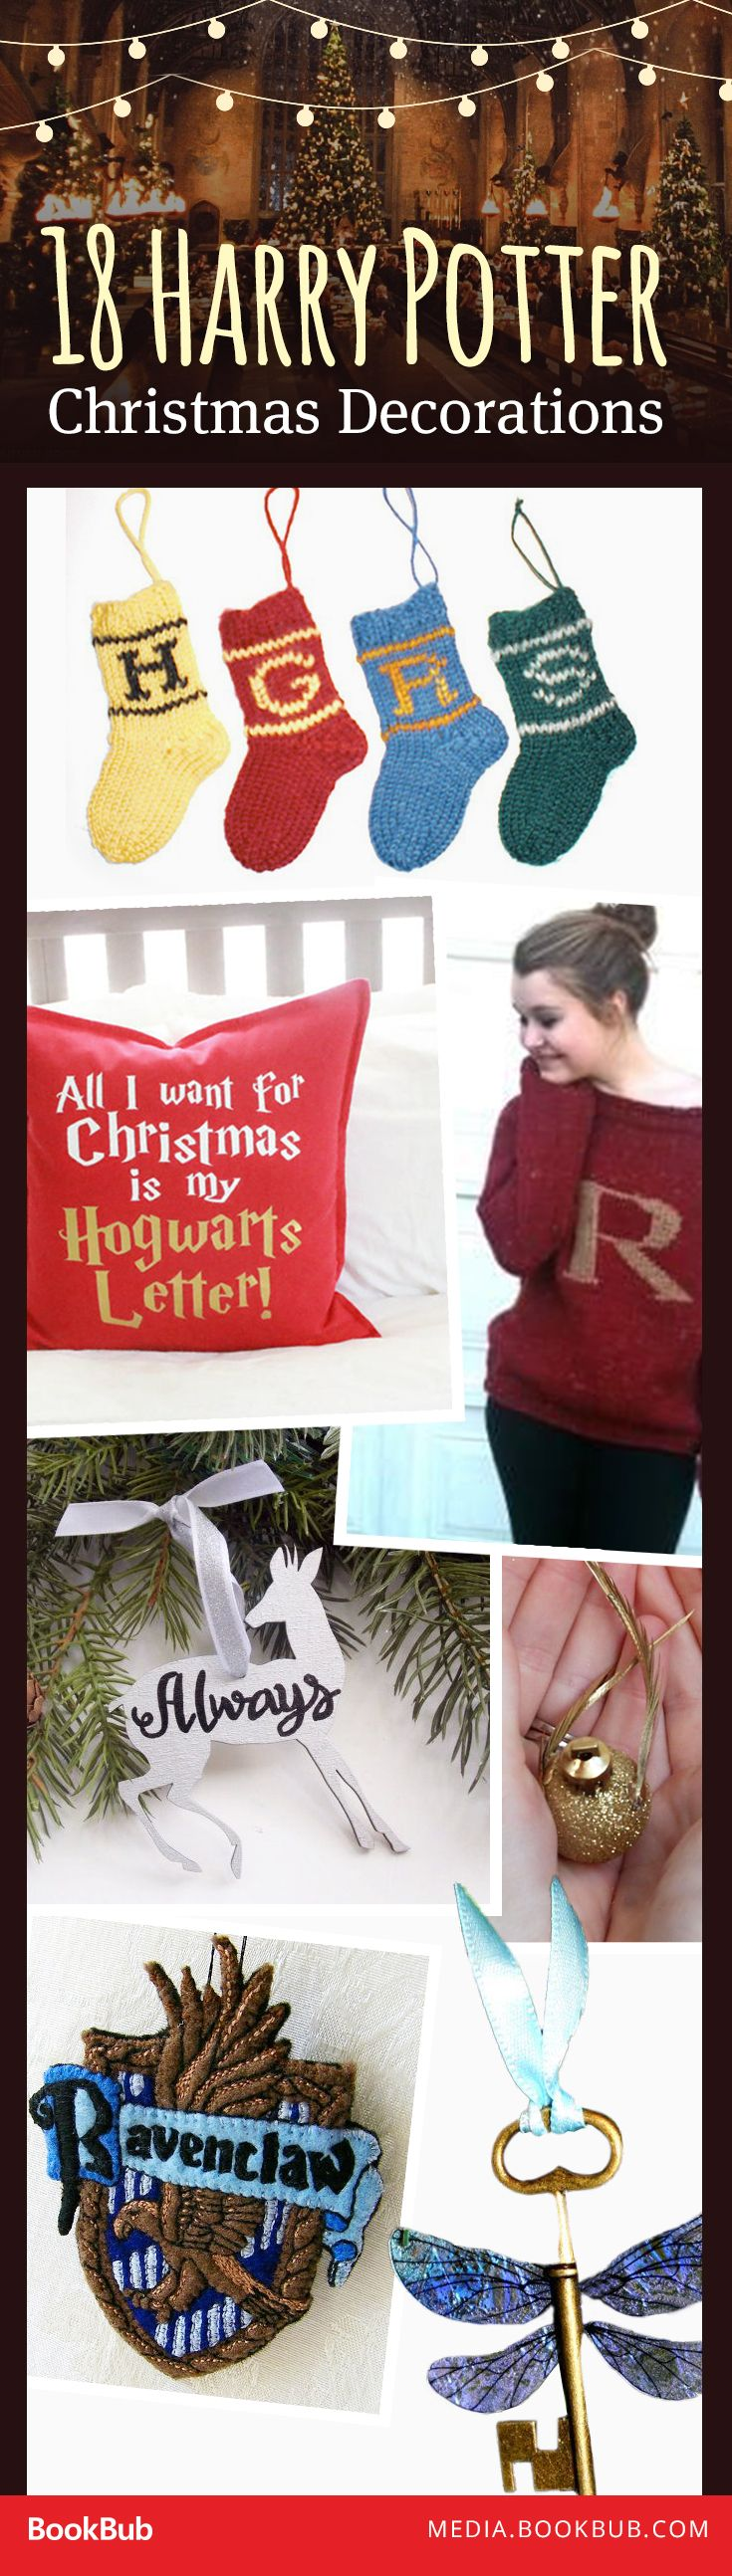 These Harry Potter decorations will bring some extra magic to your home over the holidays.